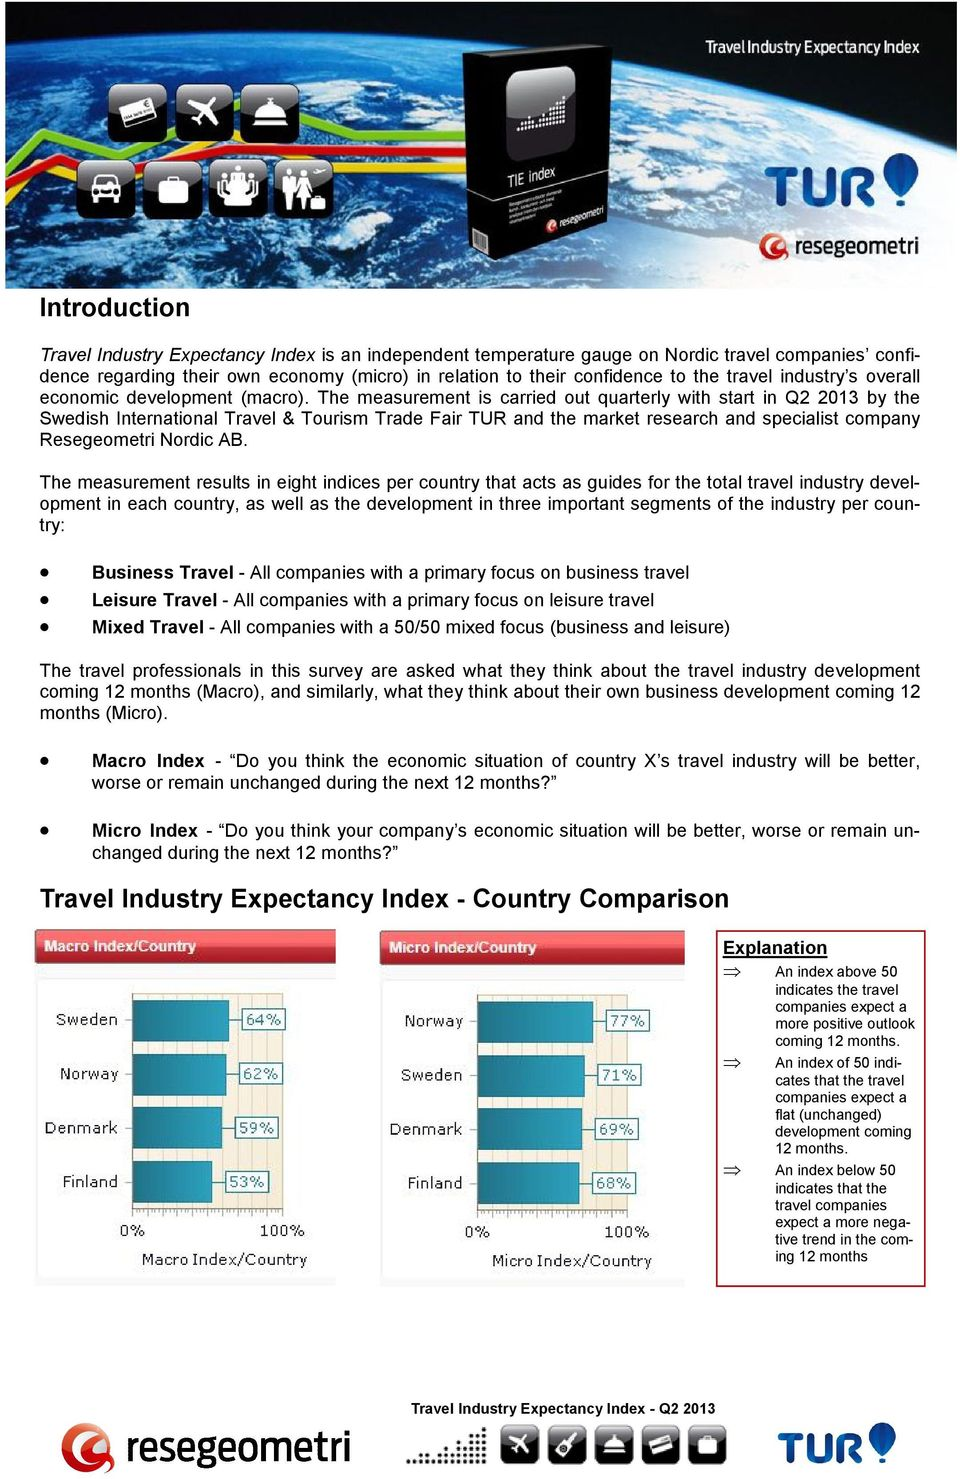 The measurement is carried out quarterly with start in Q2 2013 by the Swedish International Travel & Tourism Trade Fair TUR and the market research and specialist company Resegeometri Nordic AB.